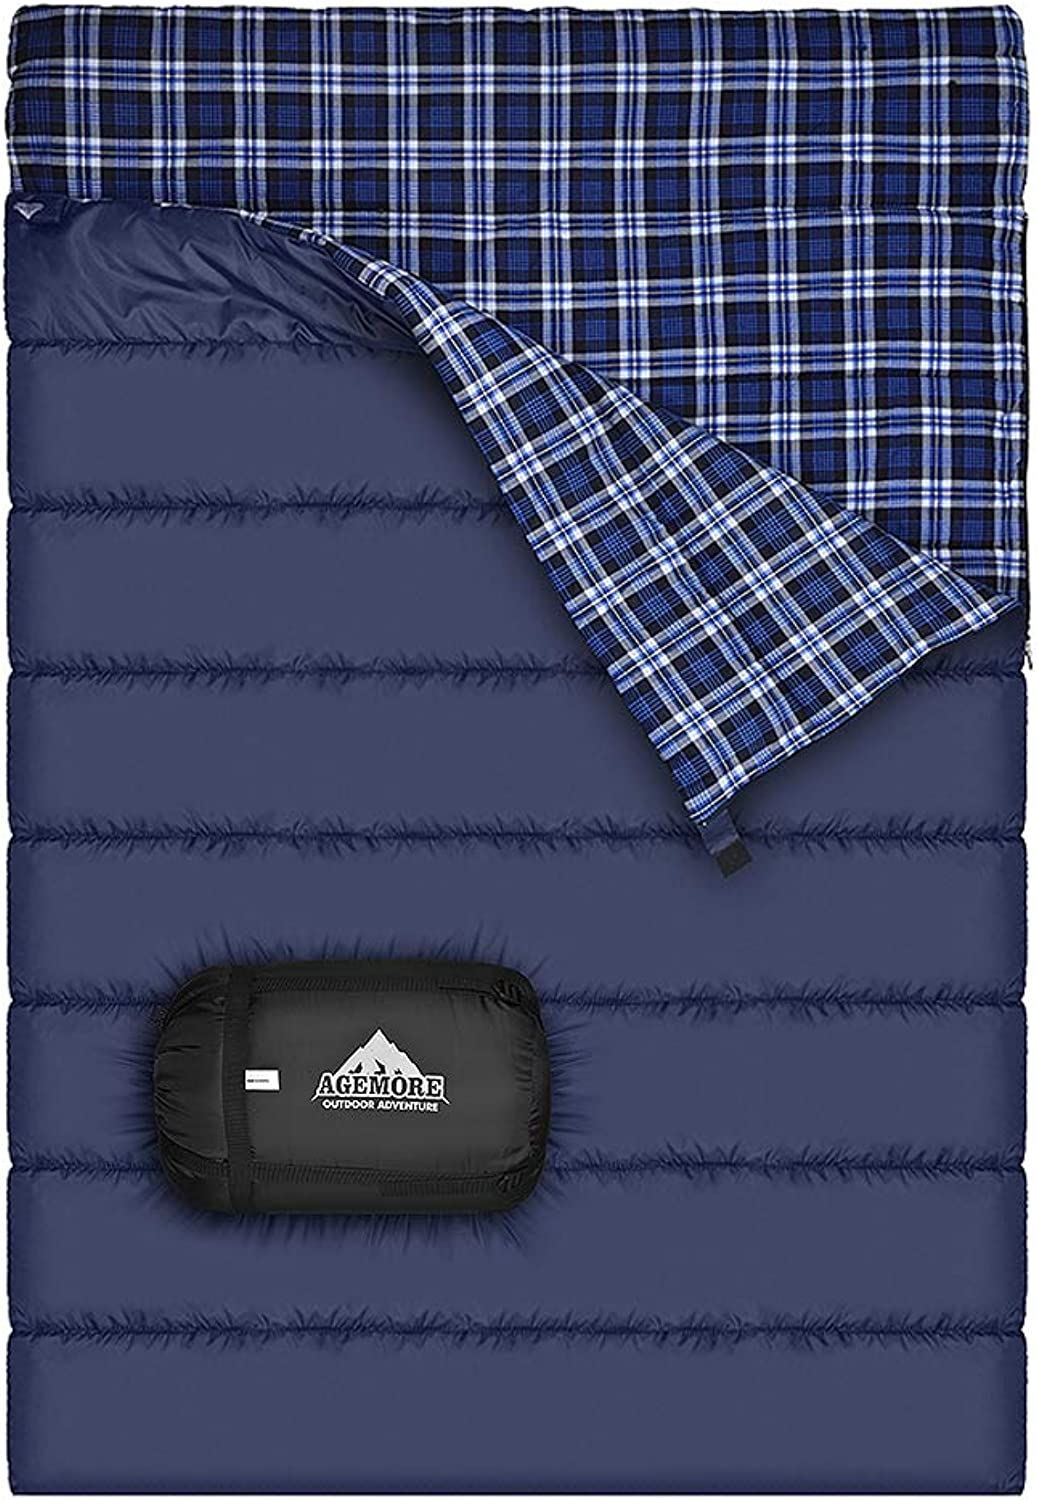 Agemore Cotton Flannel Double Sleeping Bag for Camping, Backpacking, Or Hiking. Queen Size 2 Person Waterproof Sleeping Bag for Adults Or Teens. Truck, Tent, Or Sleeping Pad, Lightweight